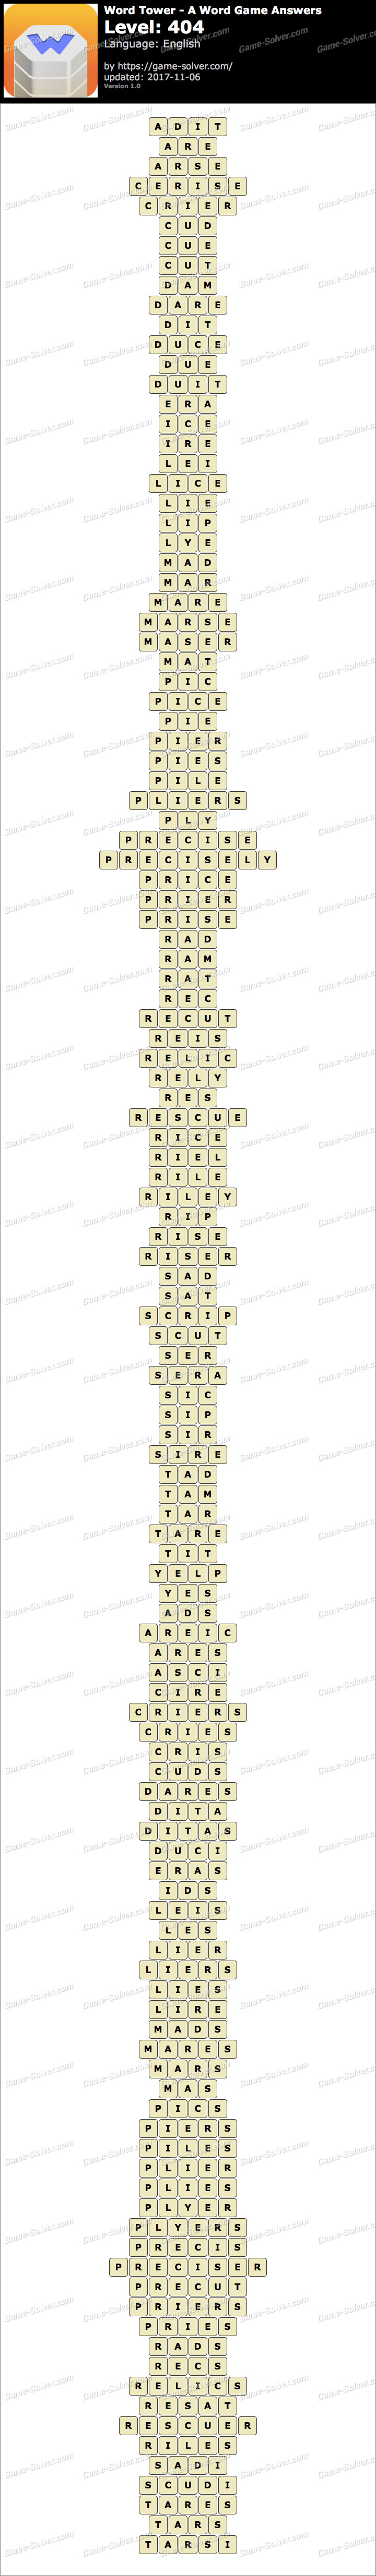 Word Tower Level 404 Answers